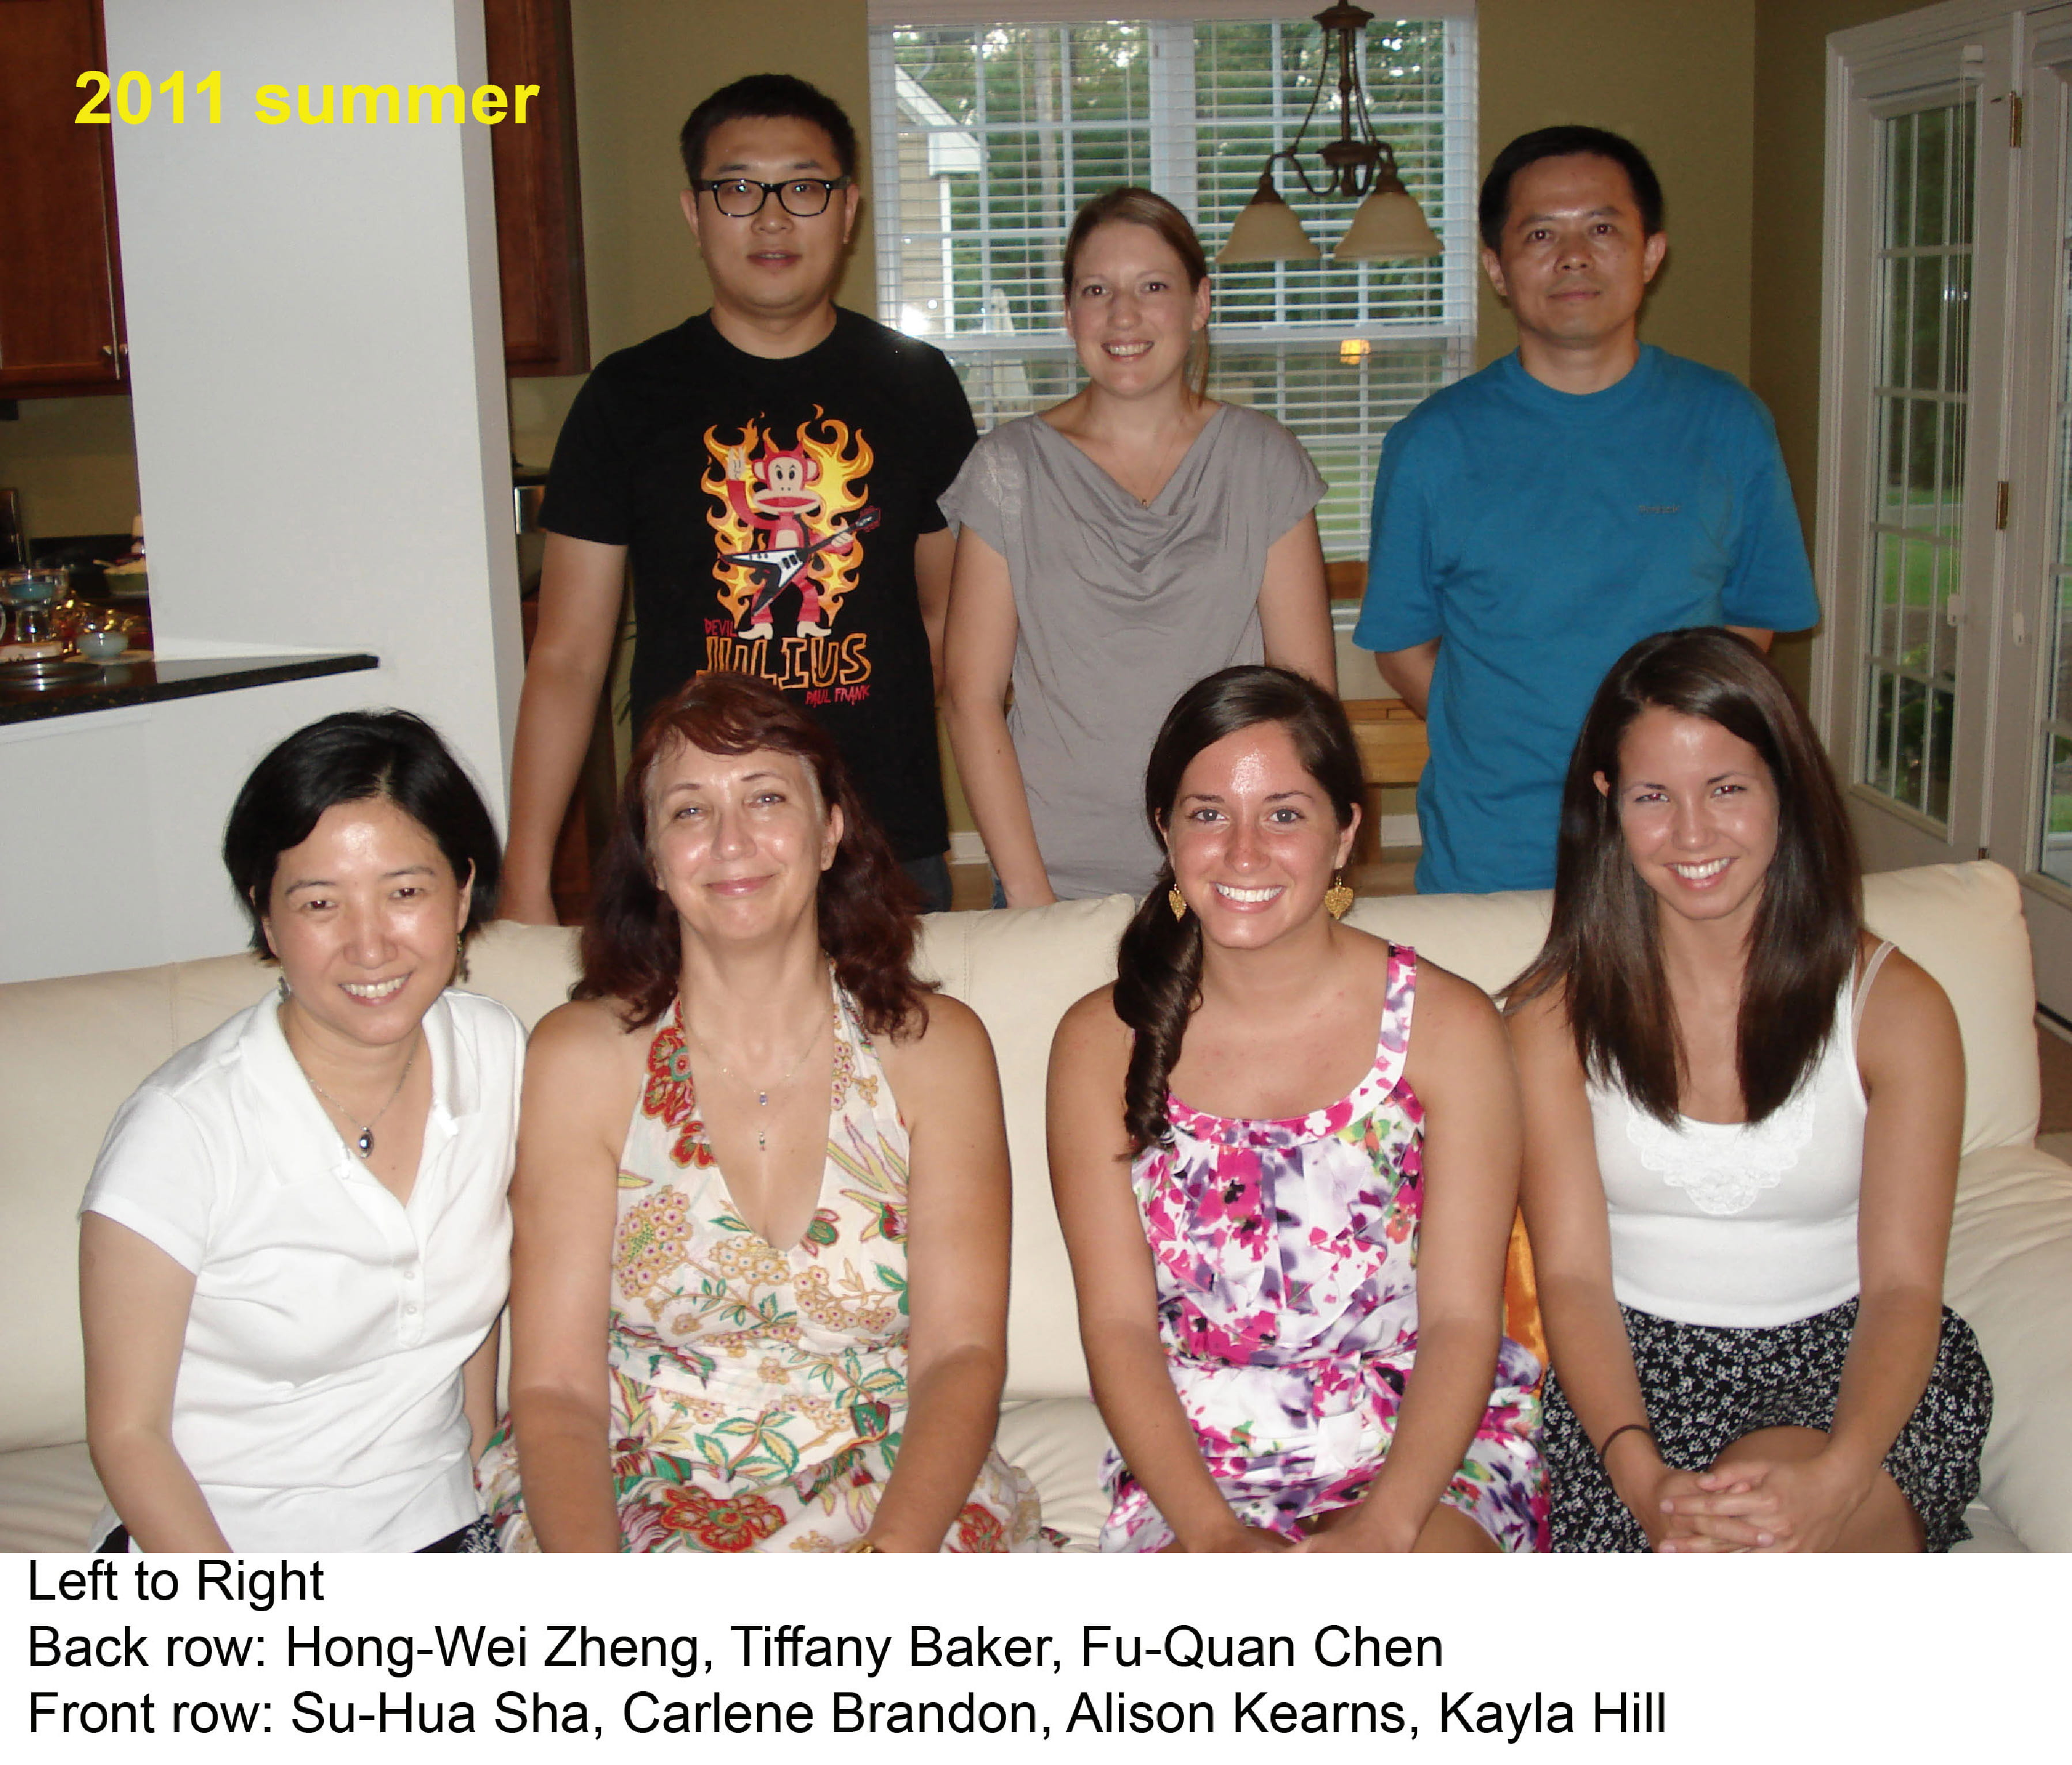 Left to Right: Back Row: Hong-Wei Zheng, Tiffany Baker, Fu-Quan Chen. Front Row: Su-Hua Sha, Charlene Brandon, Alison Kearns, Kayla Hill